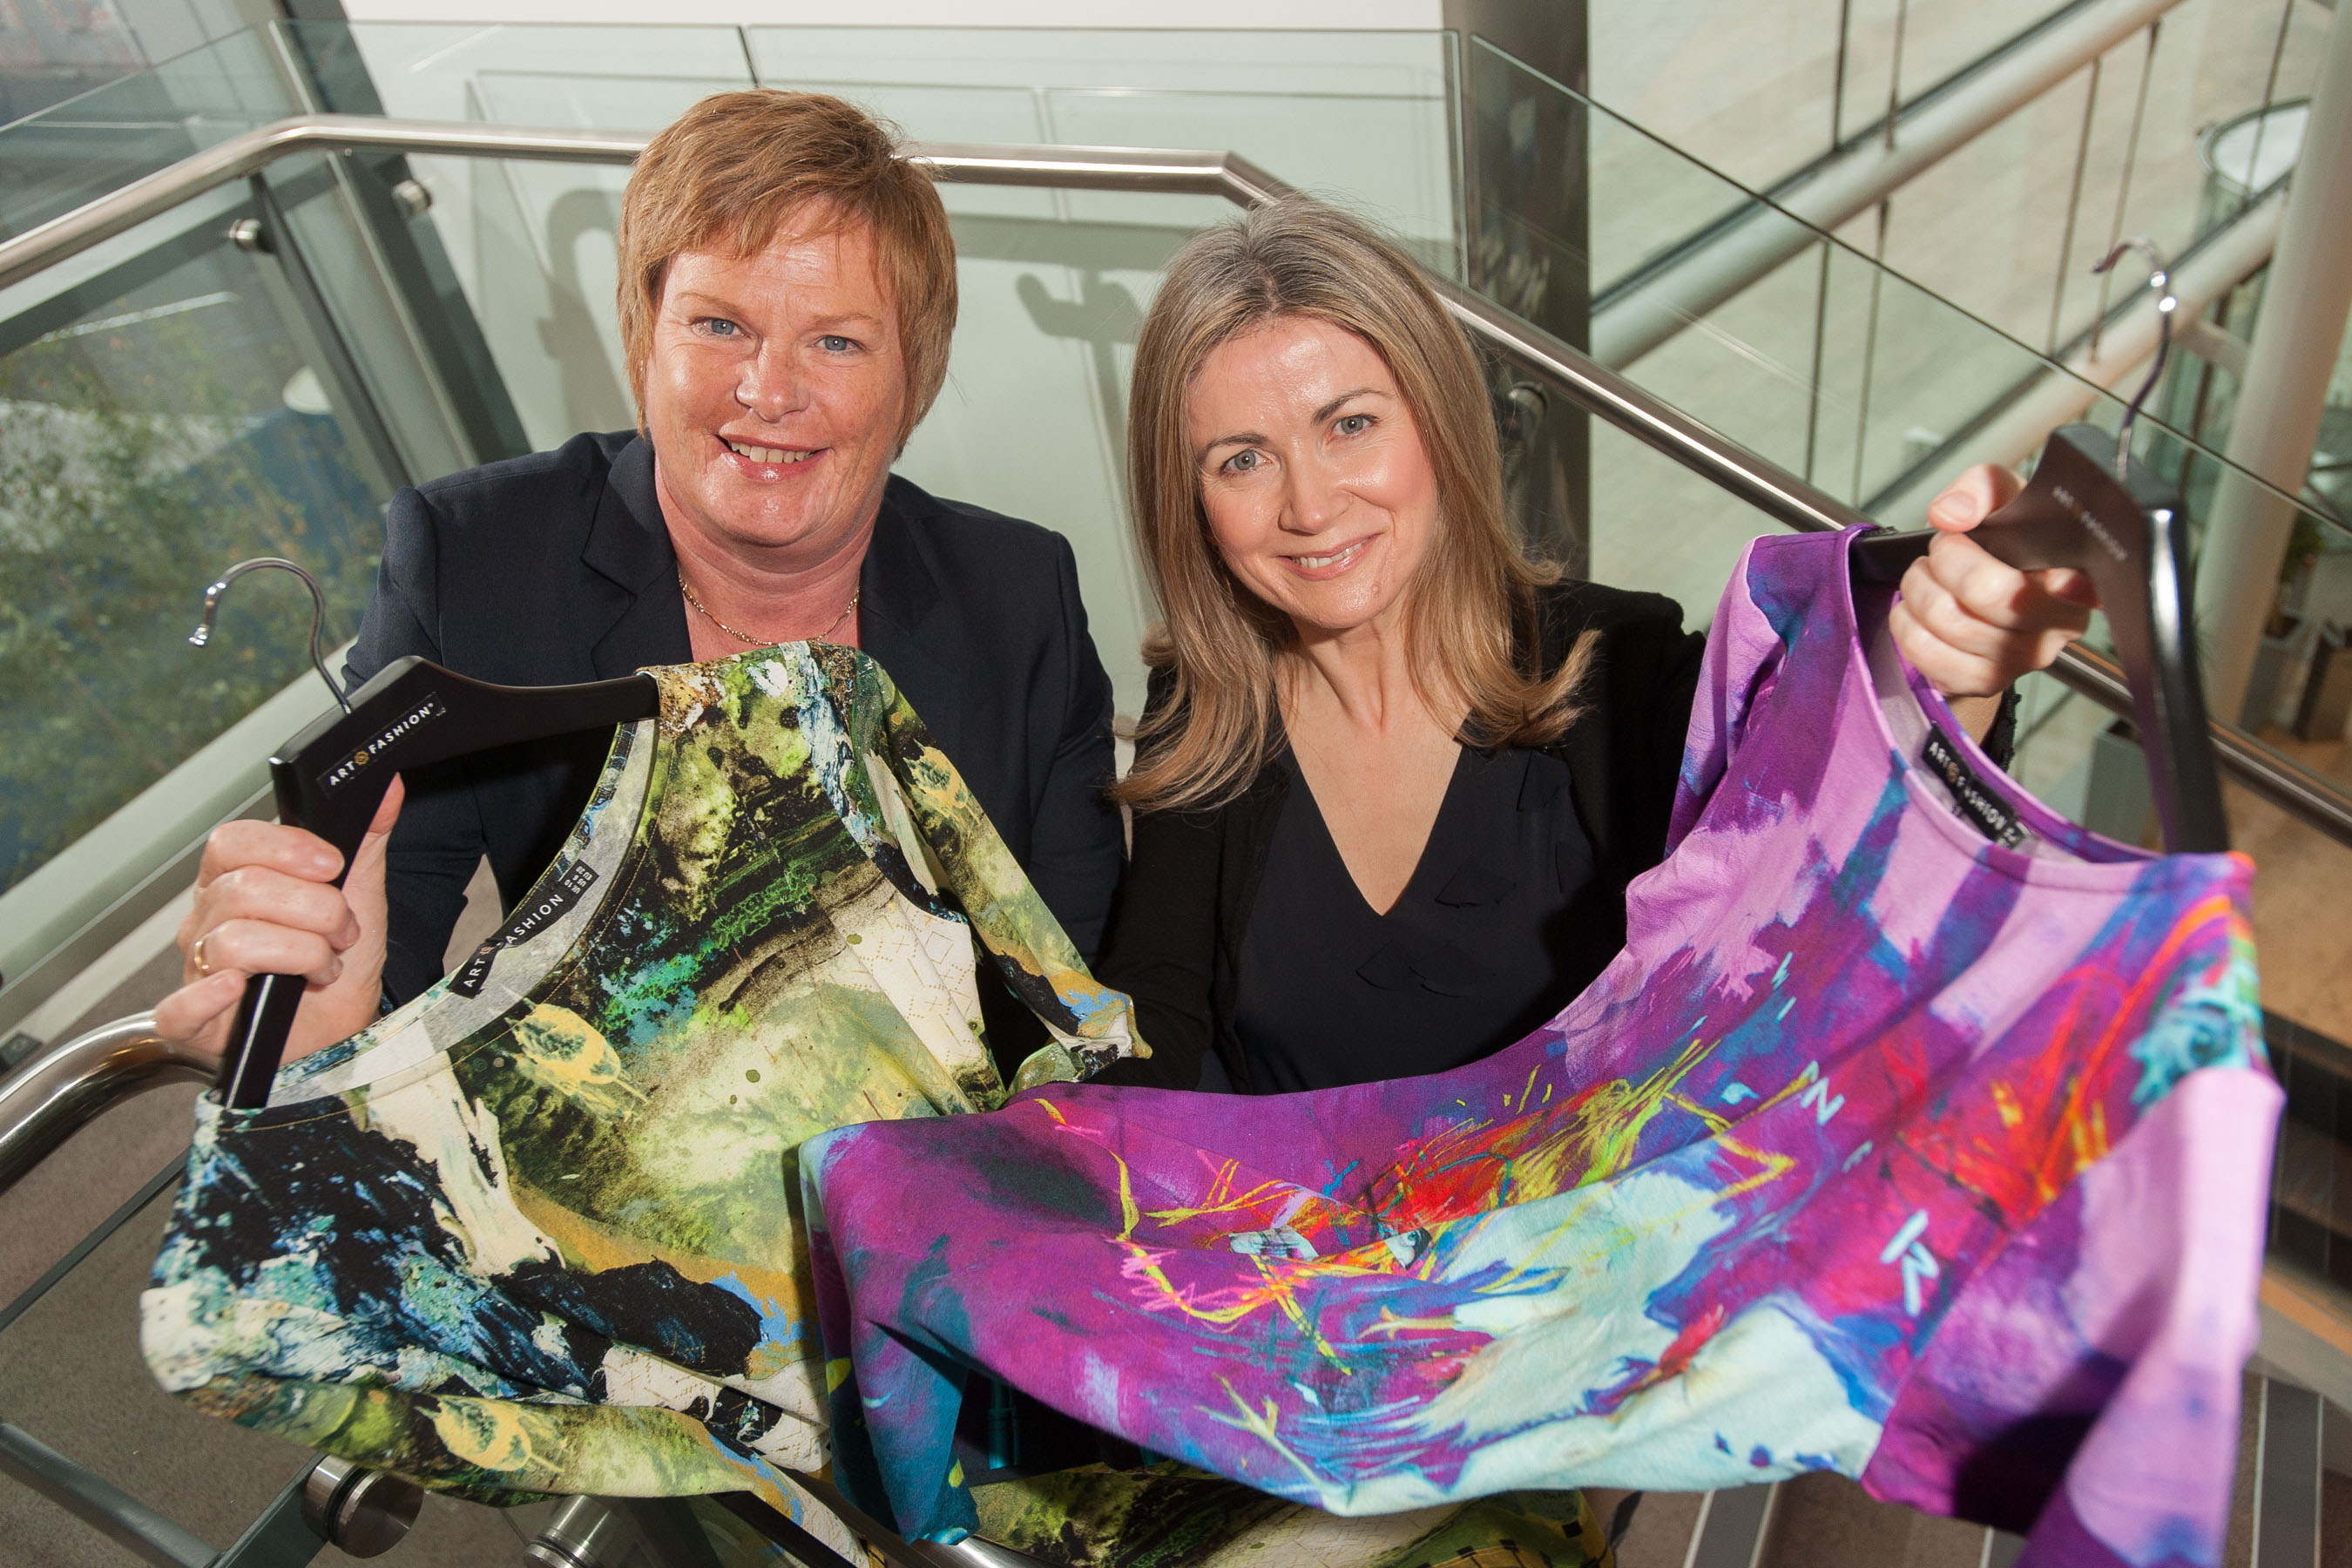 Art On Fashion Helped By Invest Ni To Export To Qatar Invest Northern Ireland